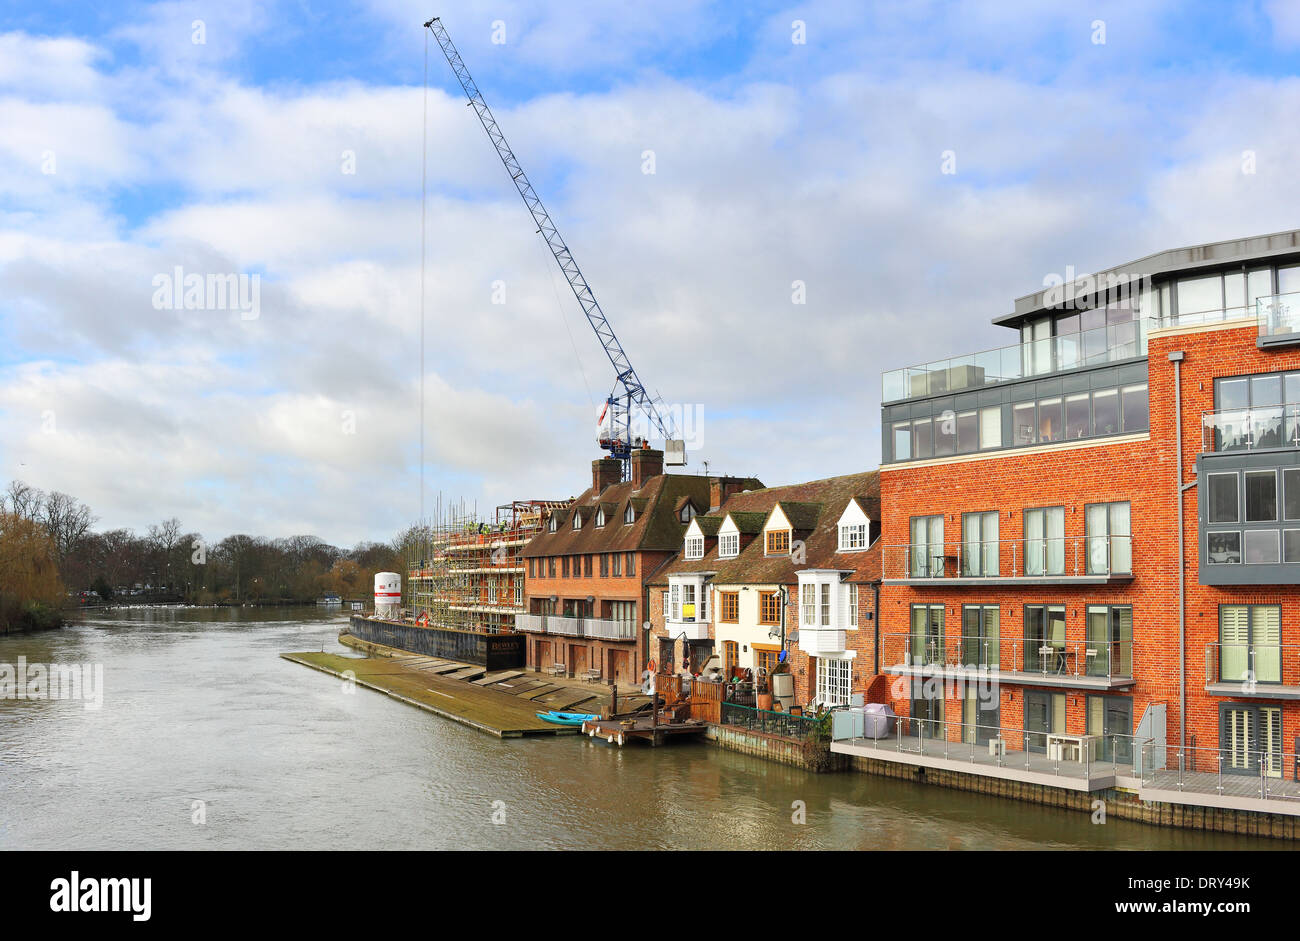 Construction work on the banks of the river Thames in Eton - Windsor - Stock Image